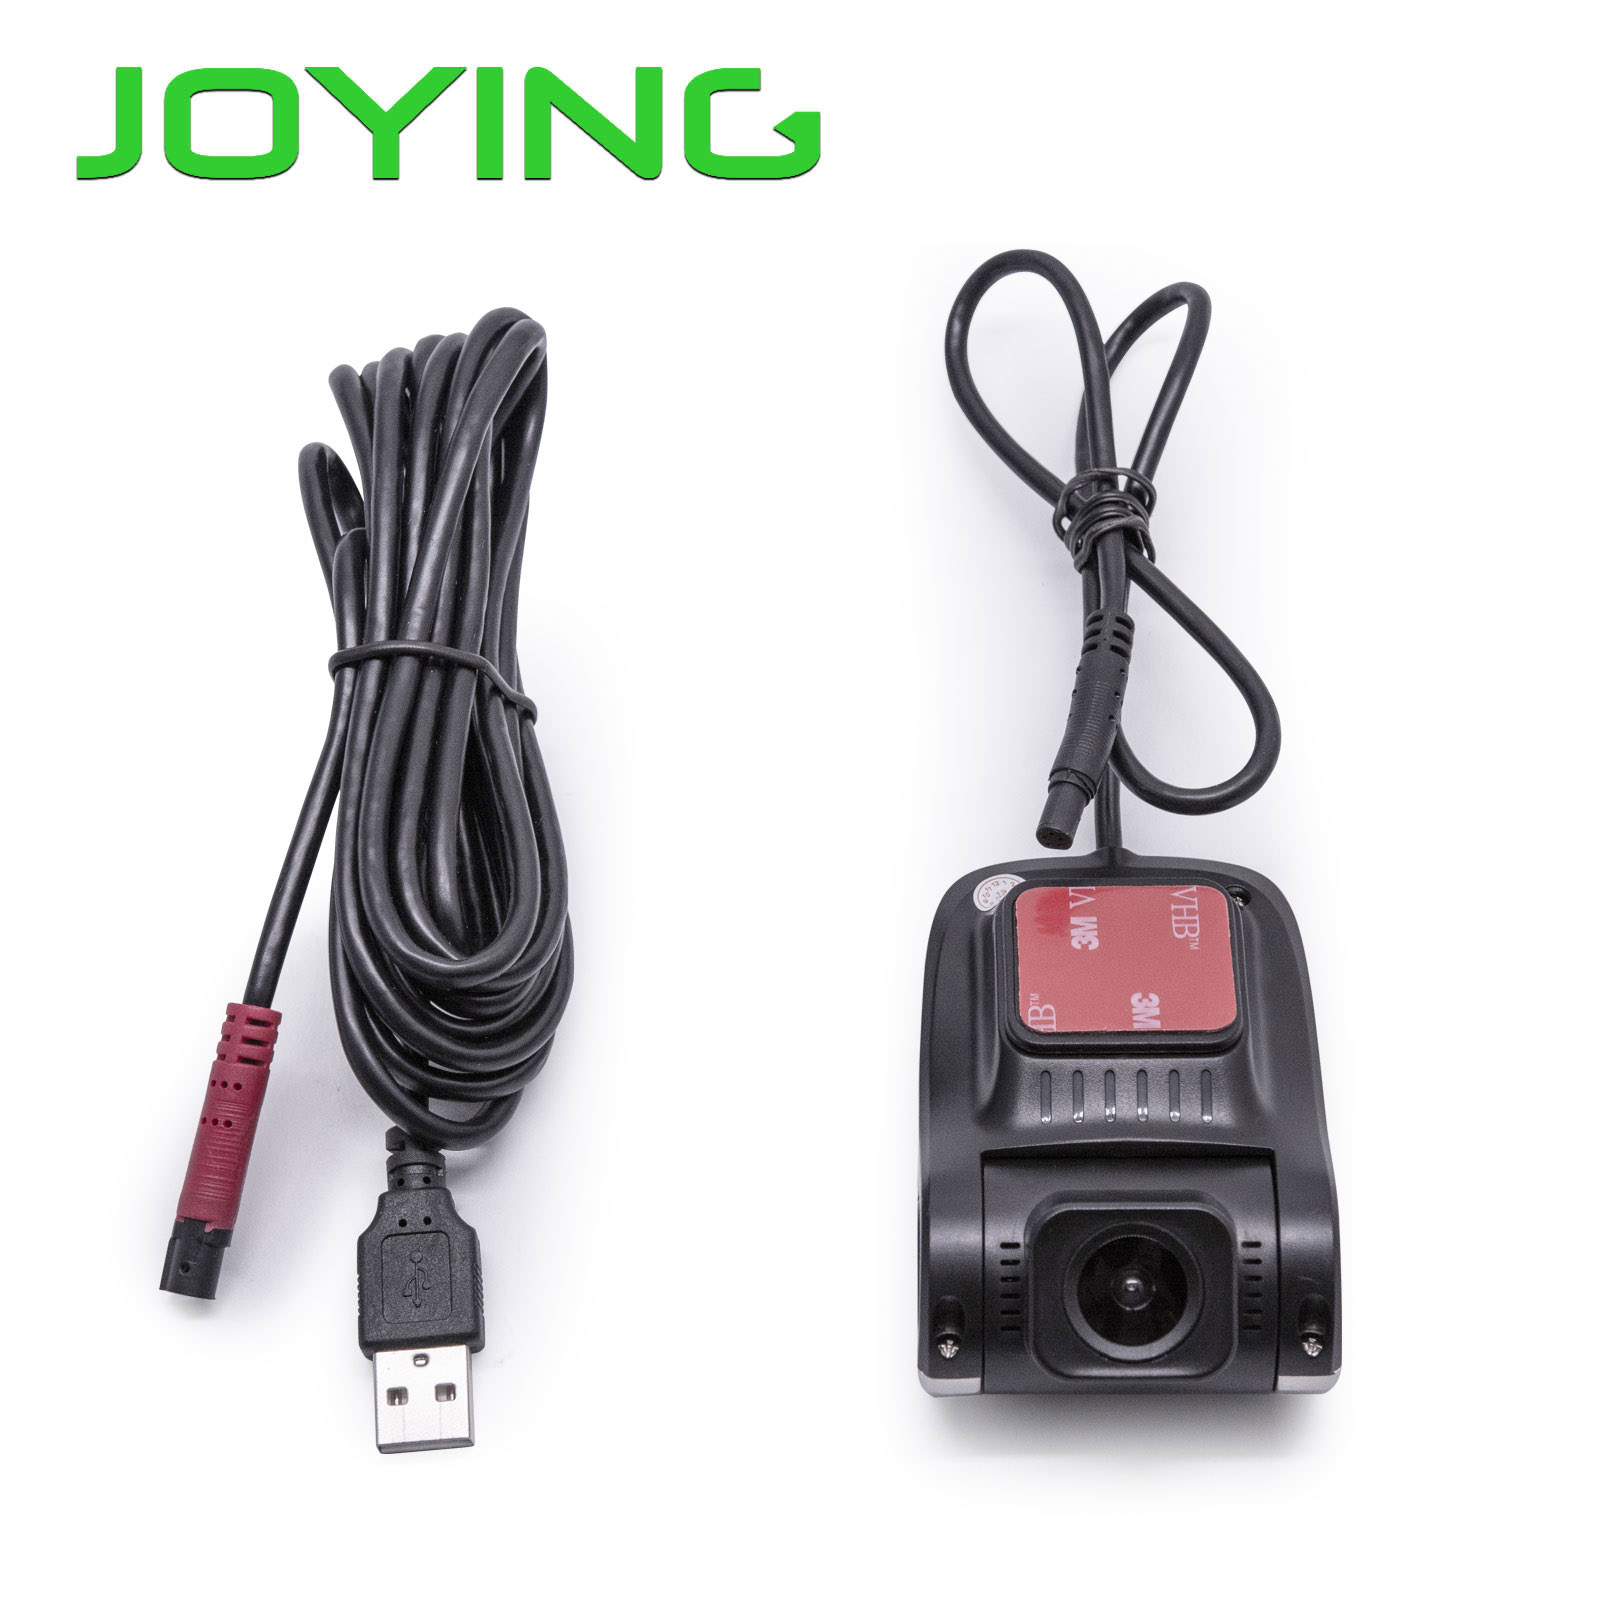 New Joying Dash Cam Full HD Video Registrator Recorder Car Camera Auto DVR for Android System Car Radio multimedia player image